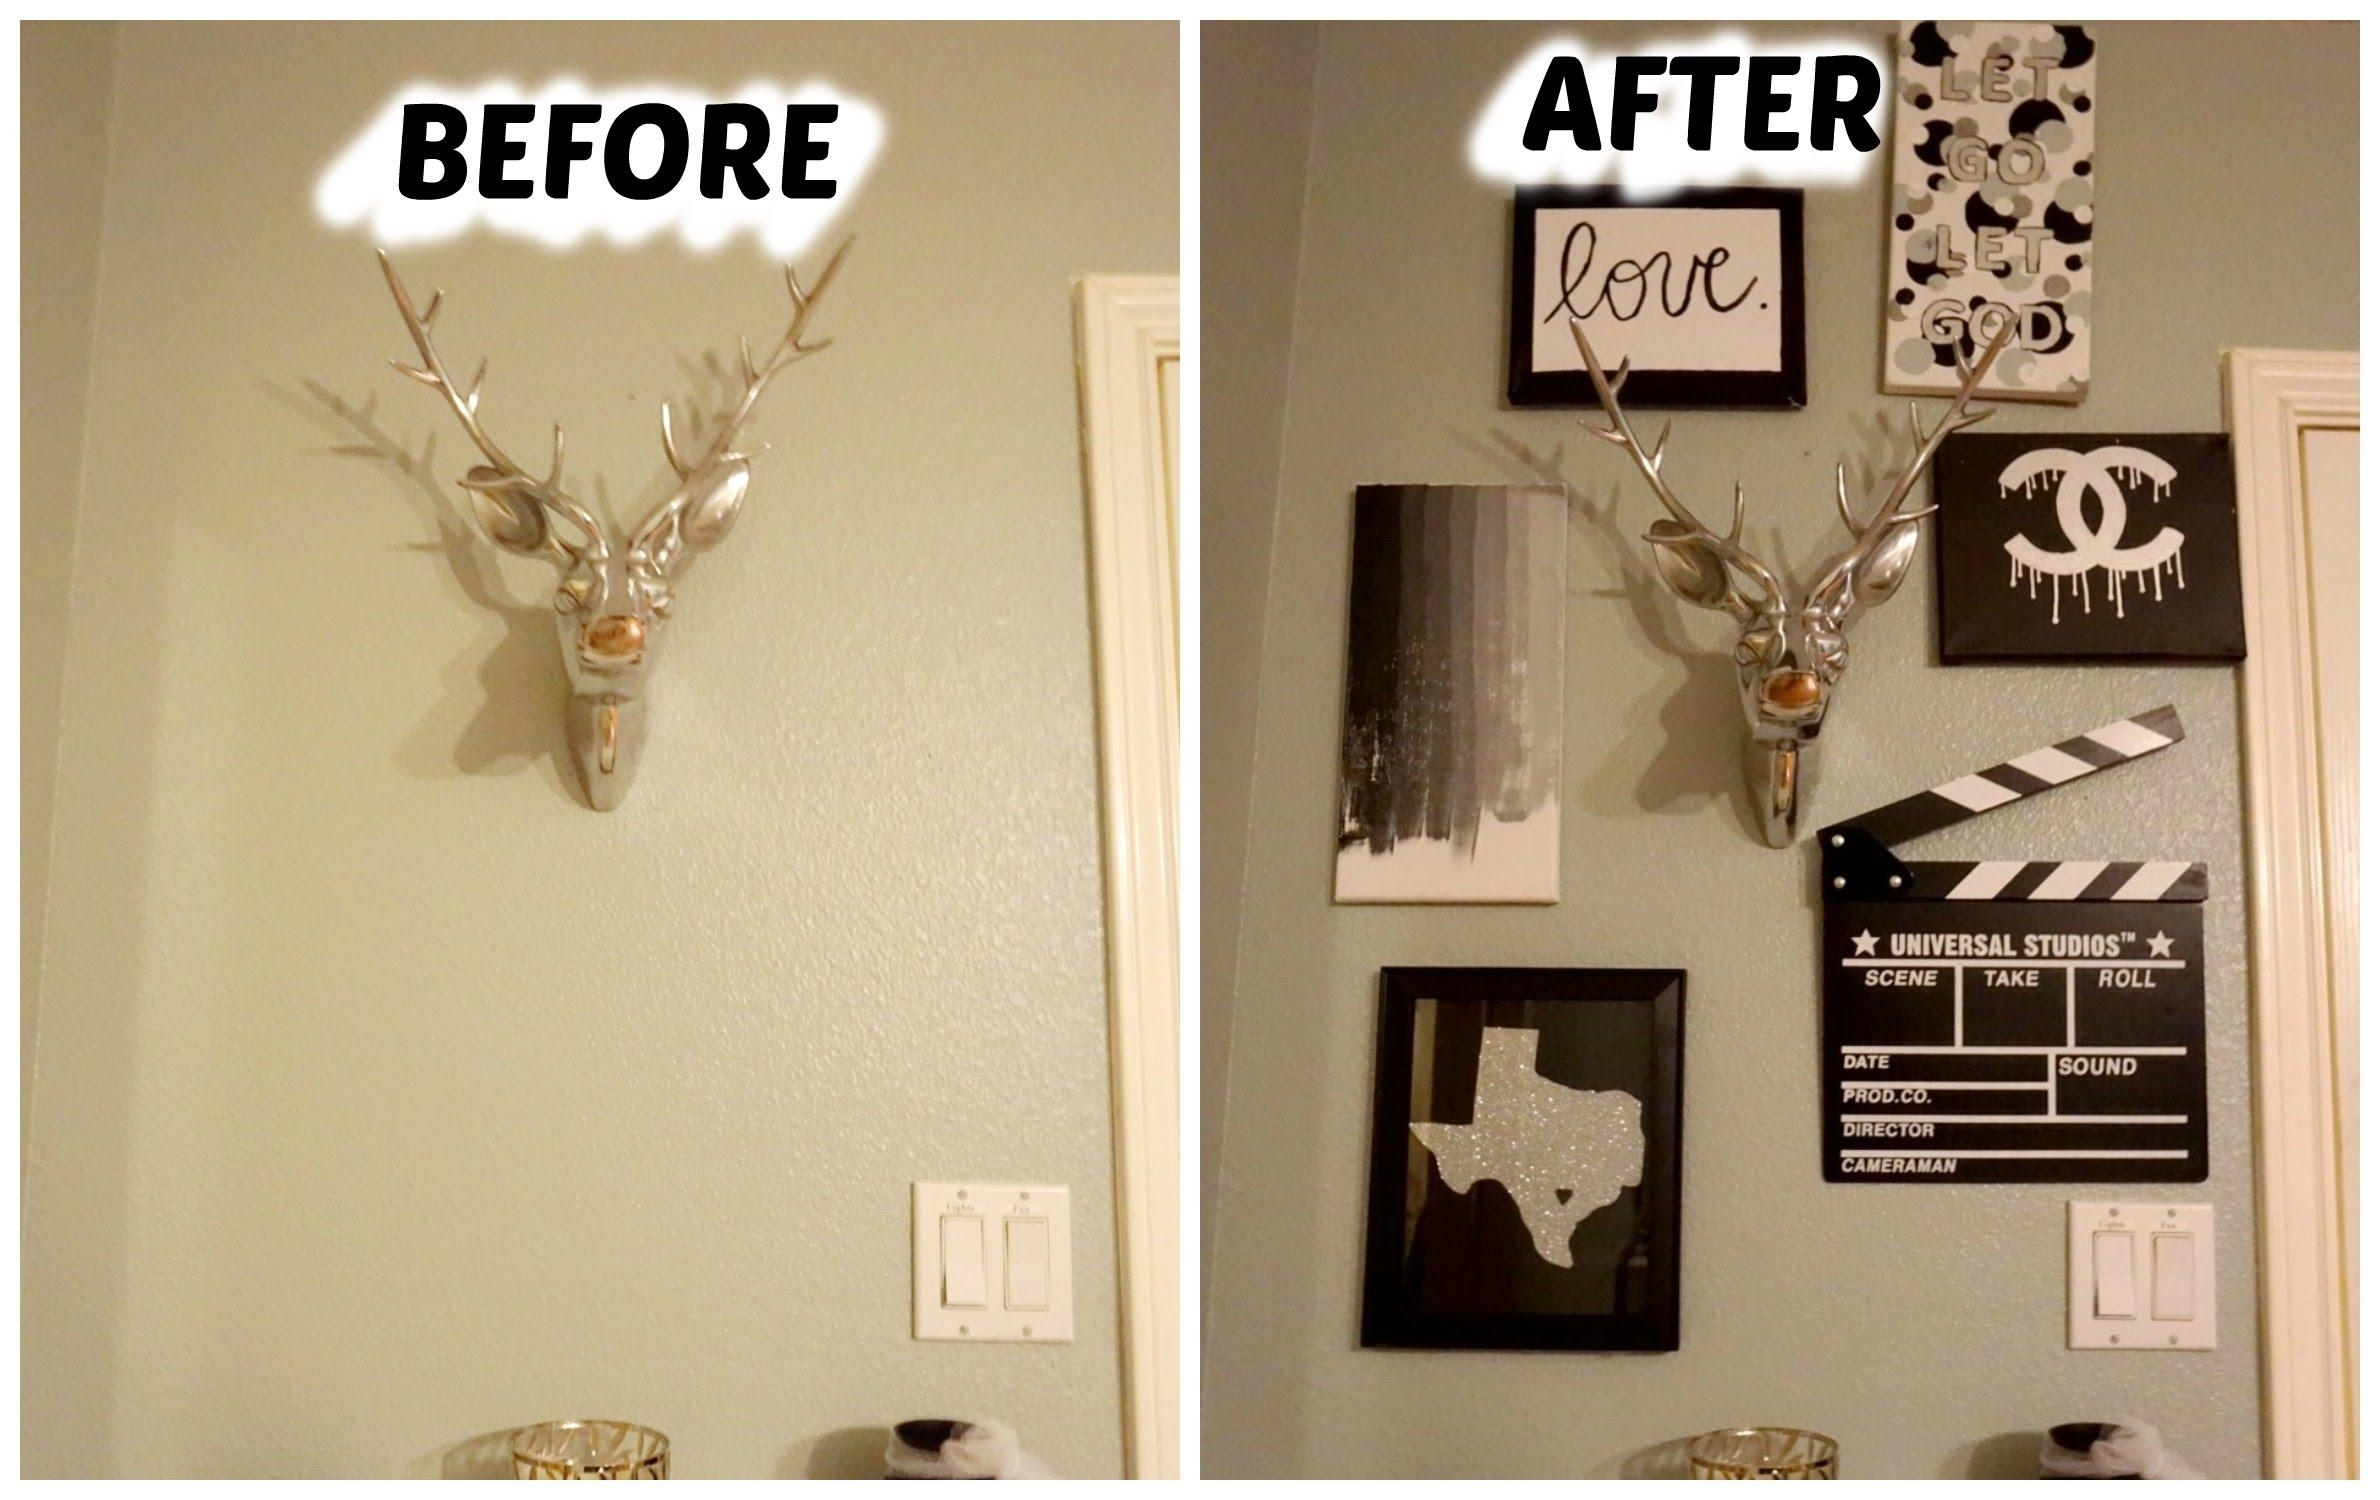 Diy Pinterest Wall Decor – Youtube With Pinterest Wall Art Decor (Image 18 of 20)